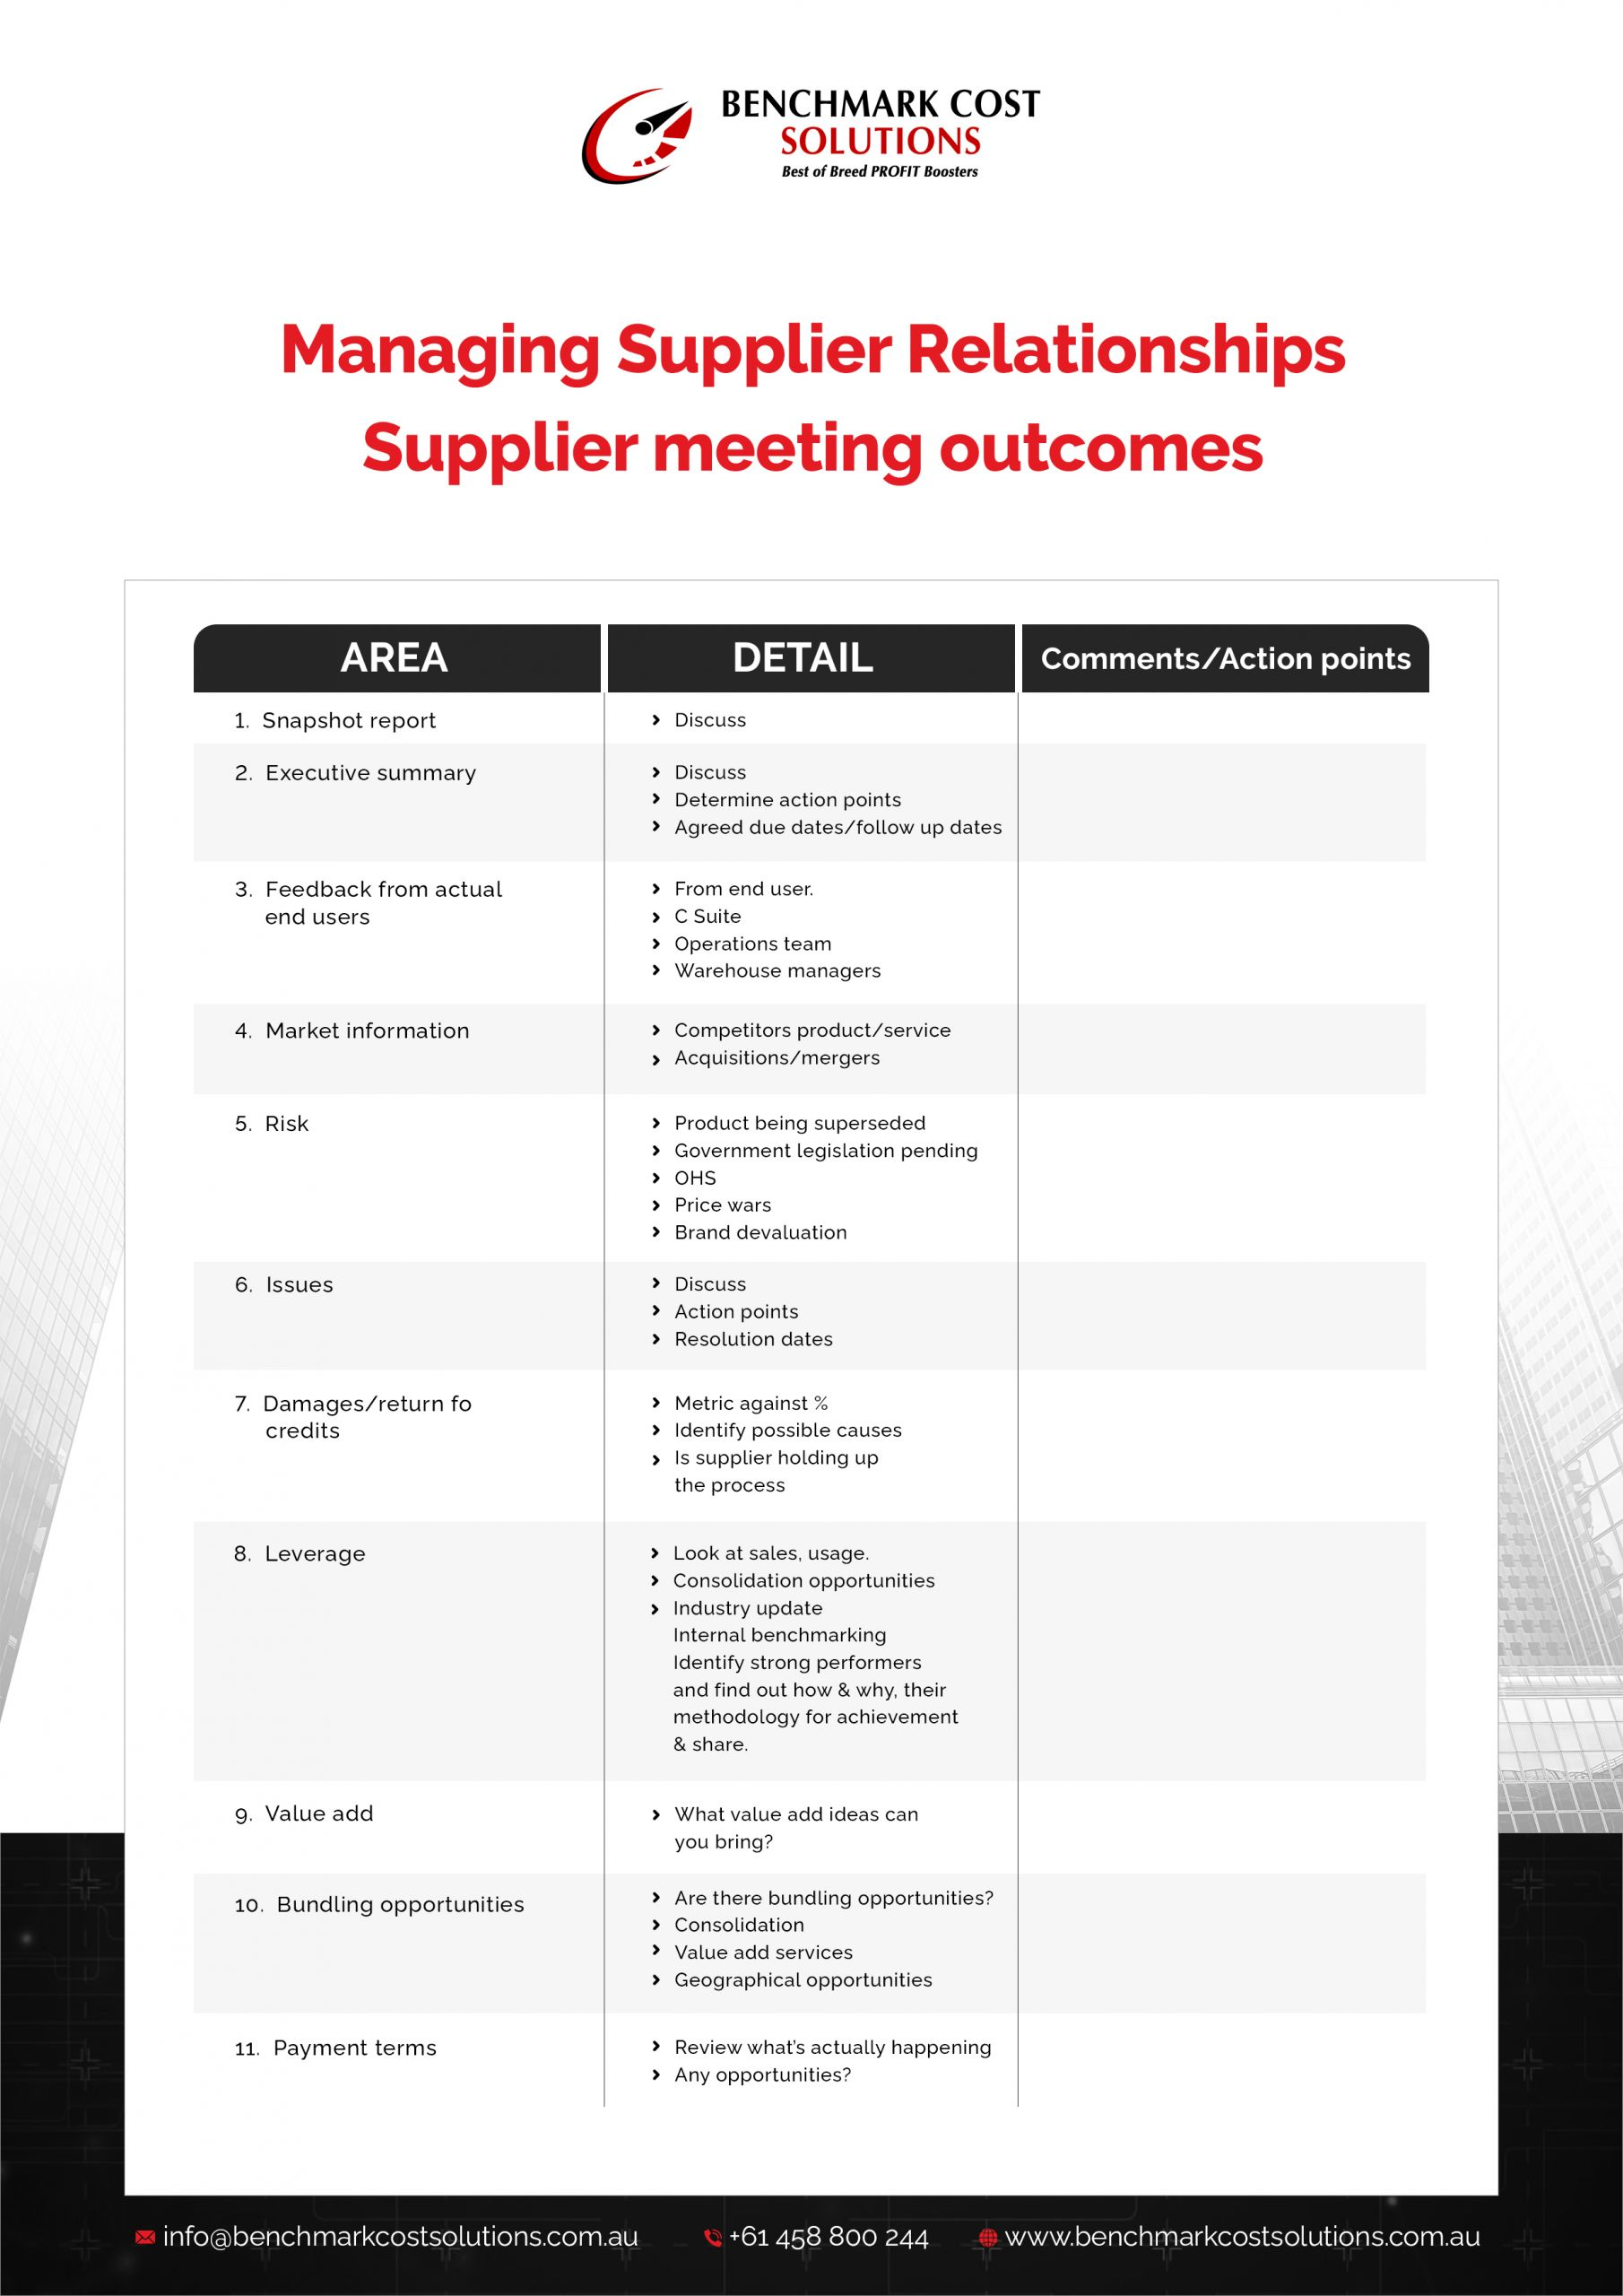 Supplier Meeting-Benchmark Cost Solutions